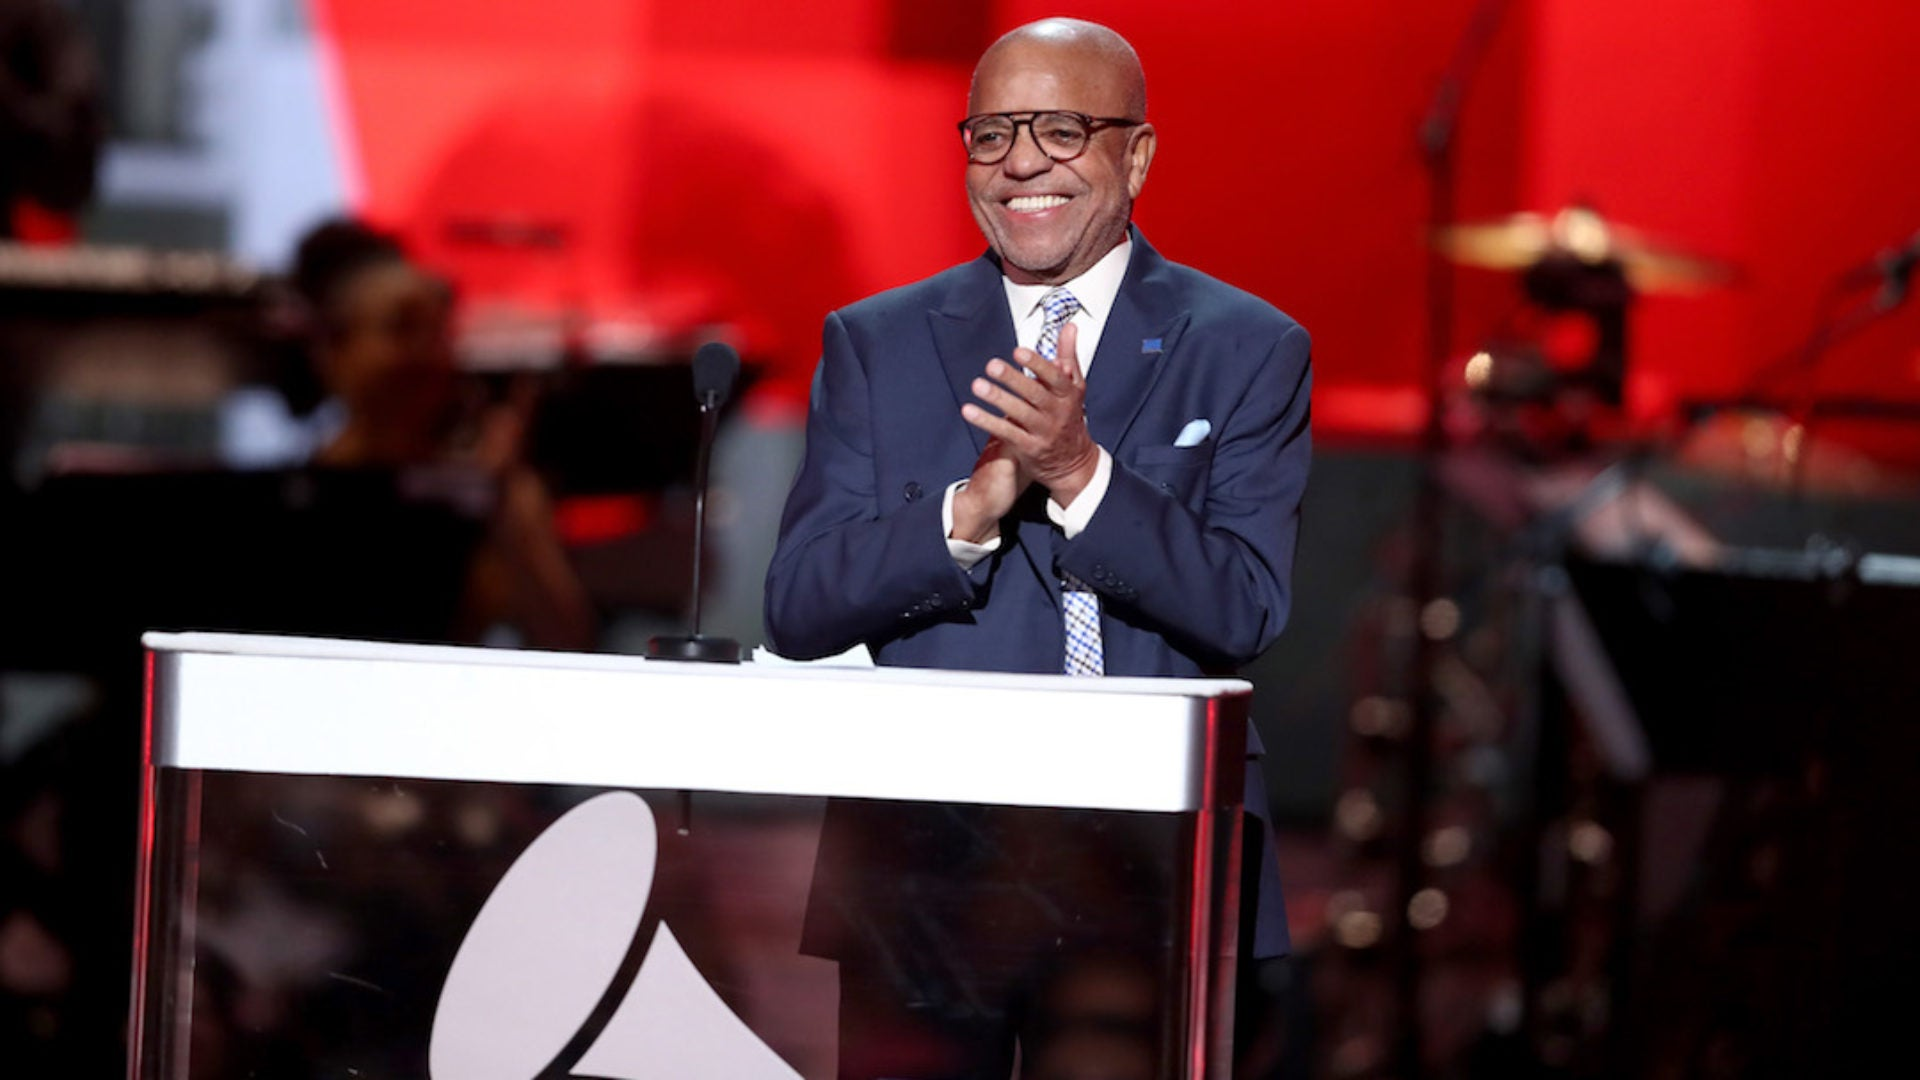 Motown Founder And Music Legend Berry Gordy Is Retiring